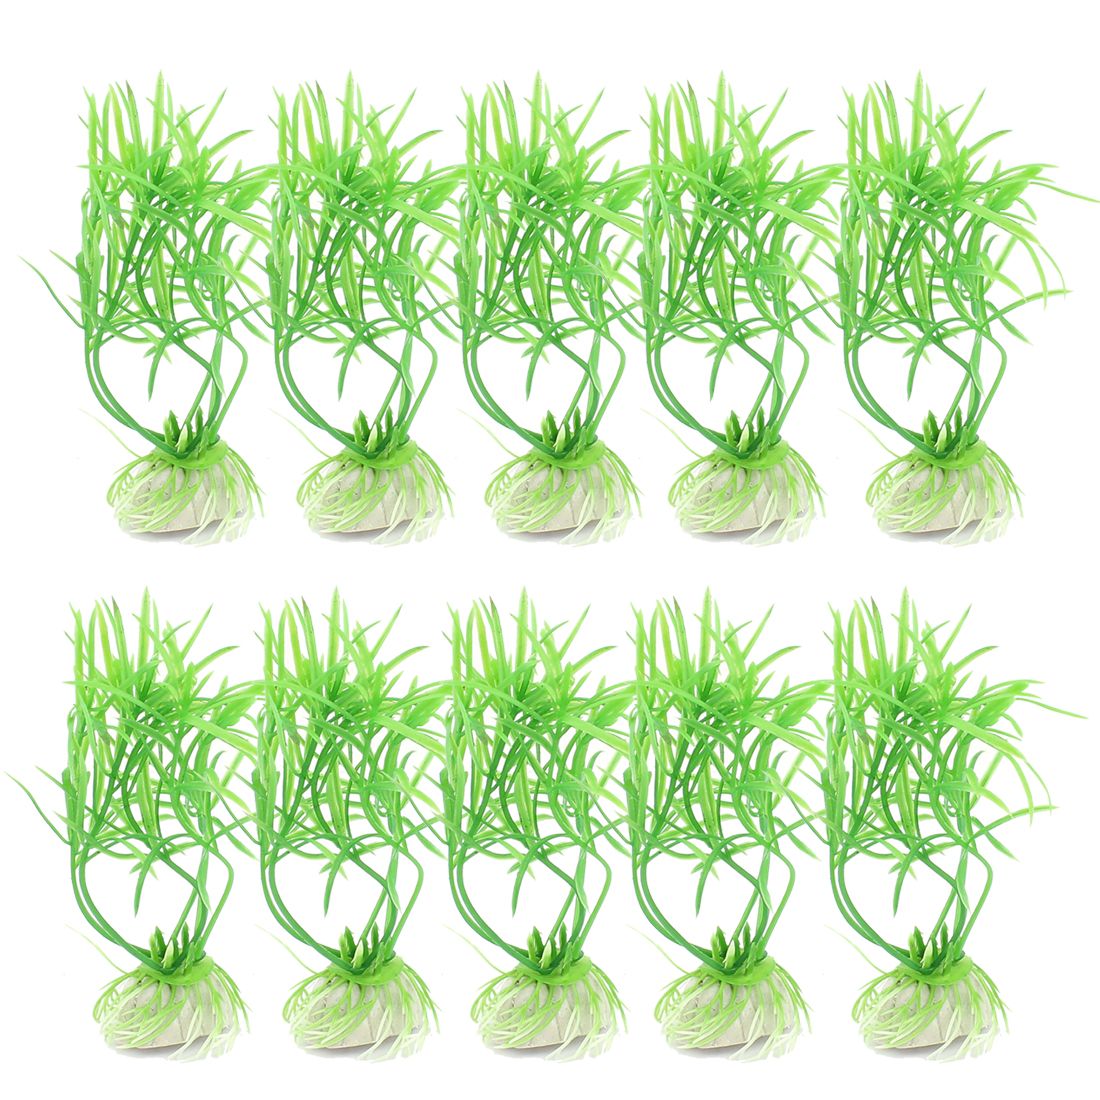 Plastic Underwater Aquatic Plant Fish Tank Aquarium Decoration Green 10PCS